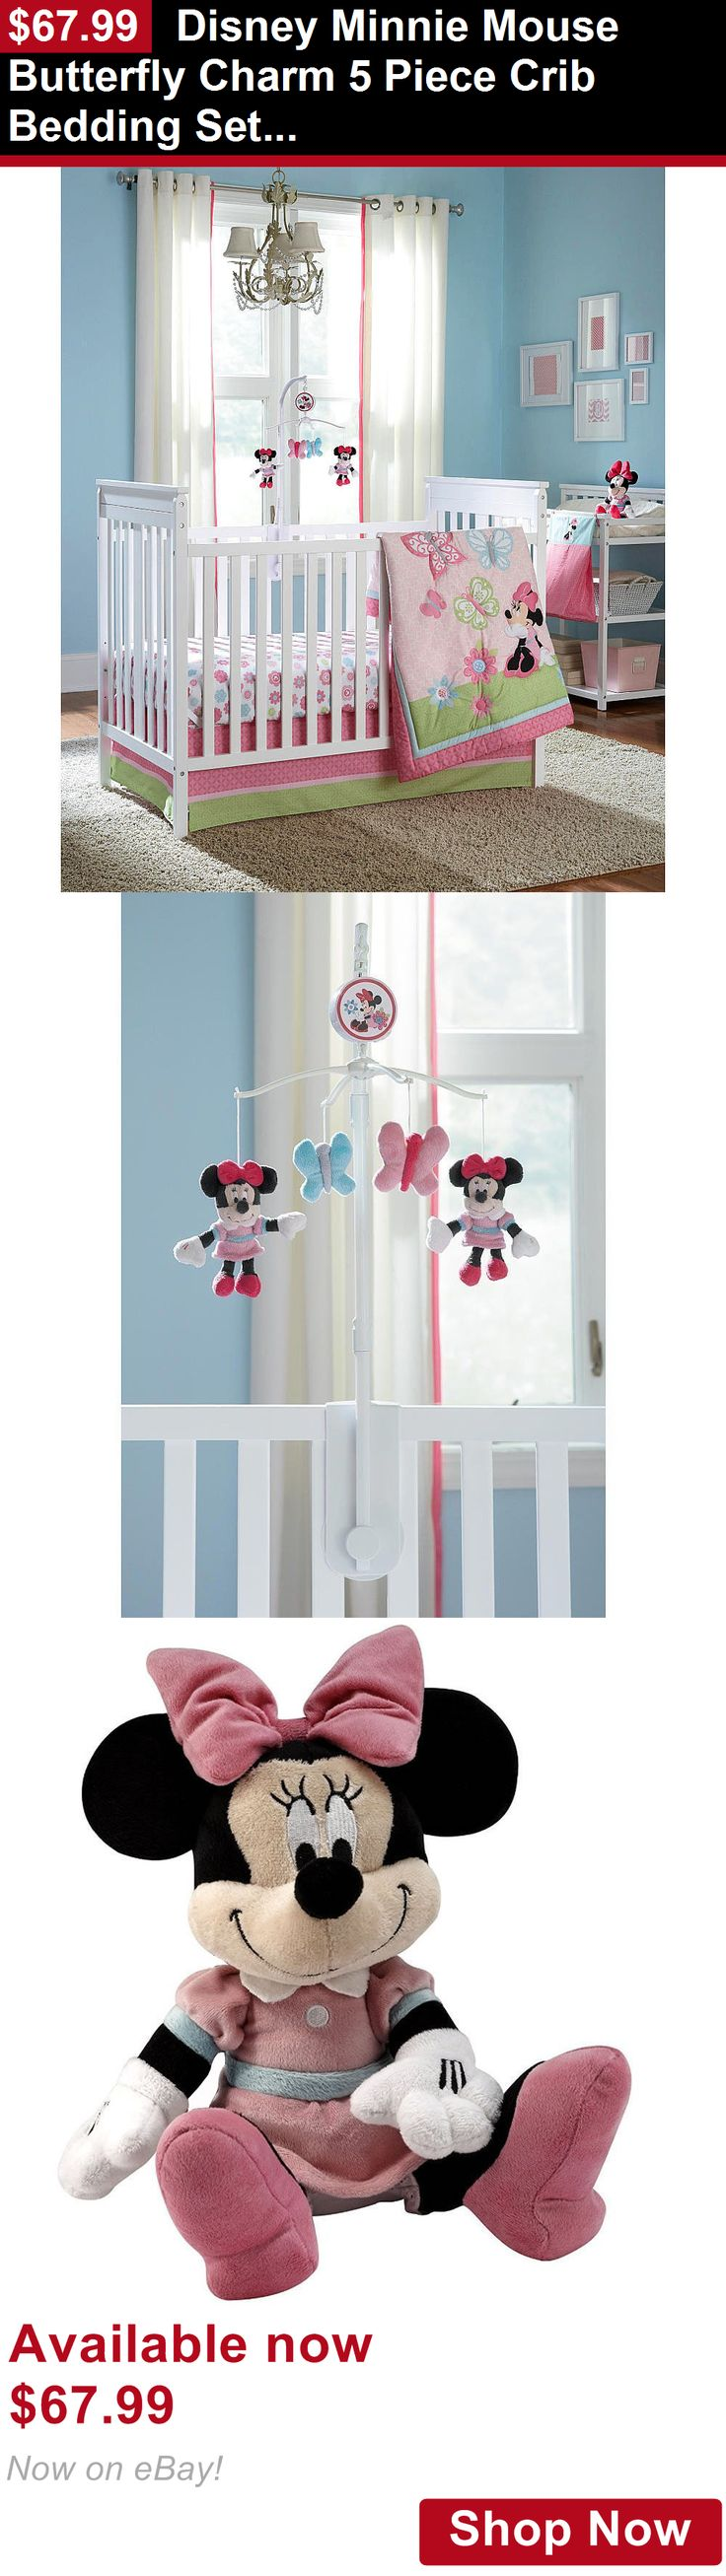 Nursery Bedding Sets: Disney Minnie Mouse Butterfly Charm 5 Piece Crib Bedding Set W Mobile BUY IT NOW ONLY: $67.99